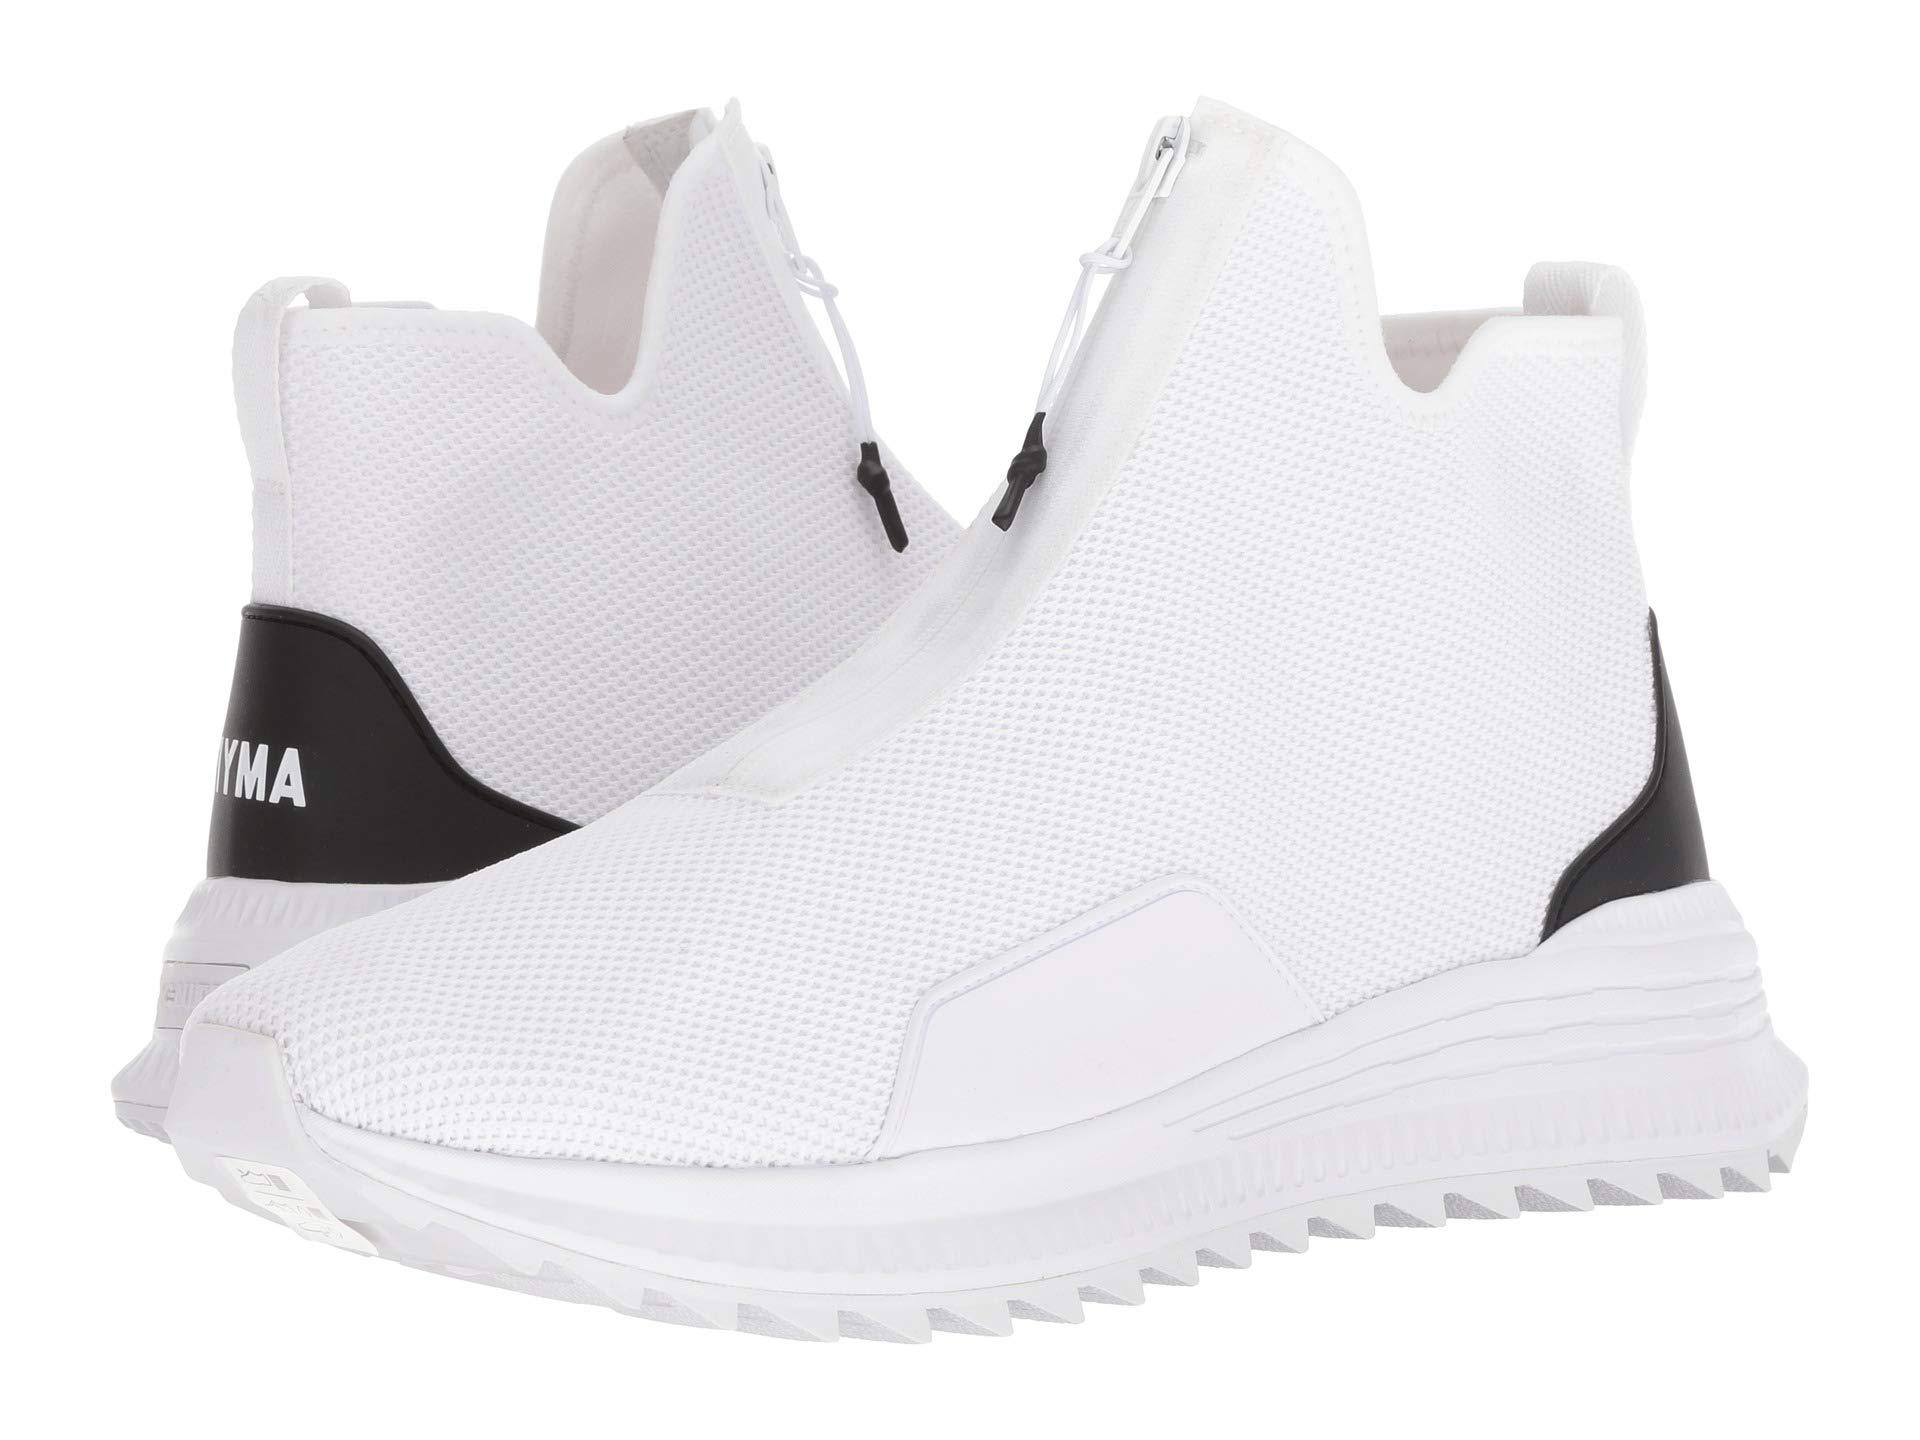 23c93624e1ac4 PUMA X Outlaw Moscow Avid Zip Sneaker ( White) Lace Up Casual Shoes for men